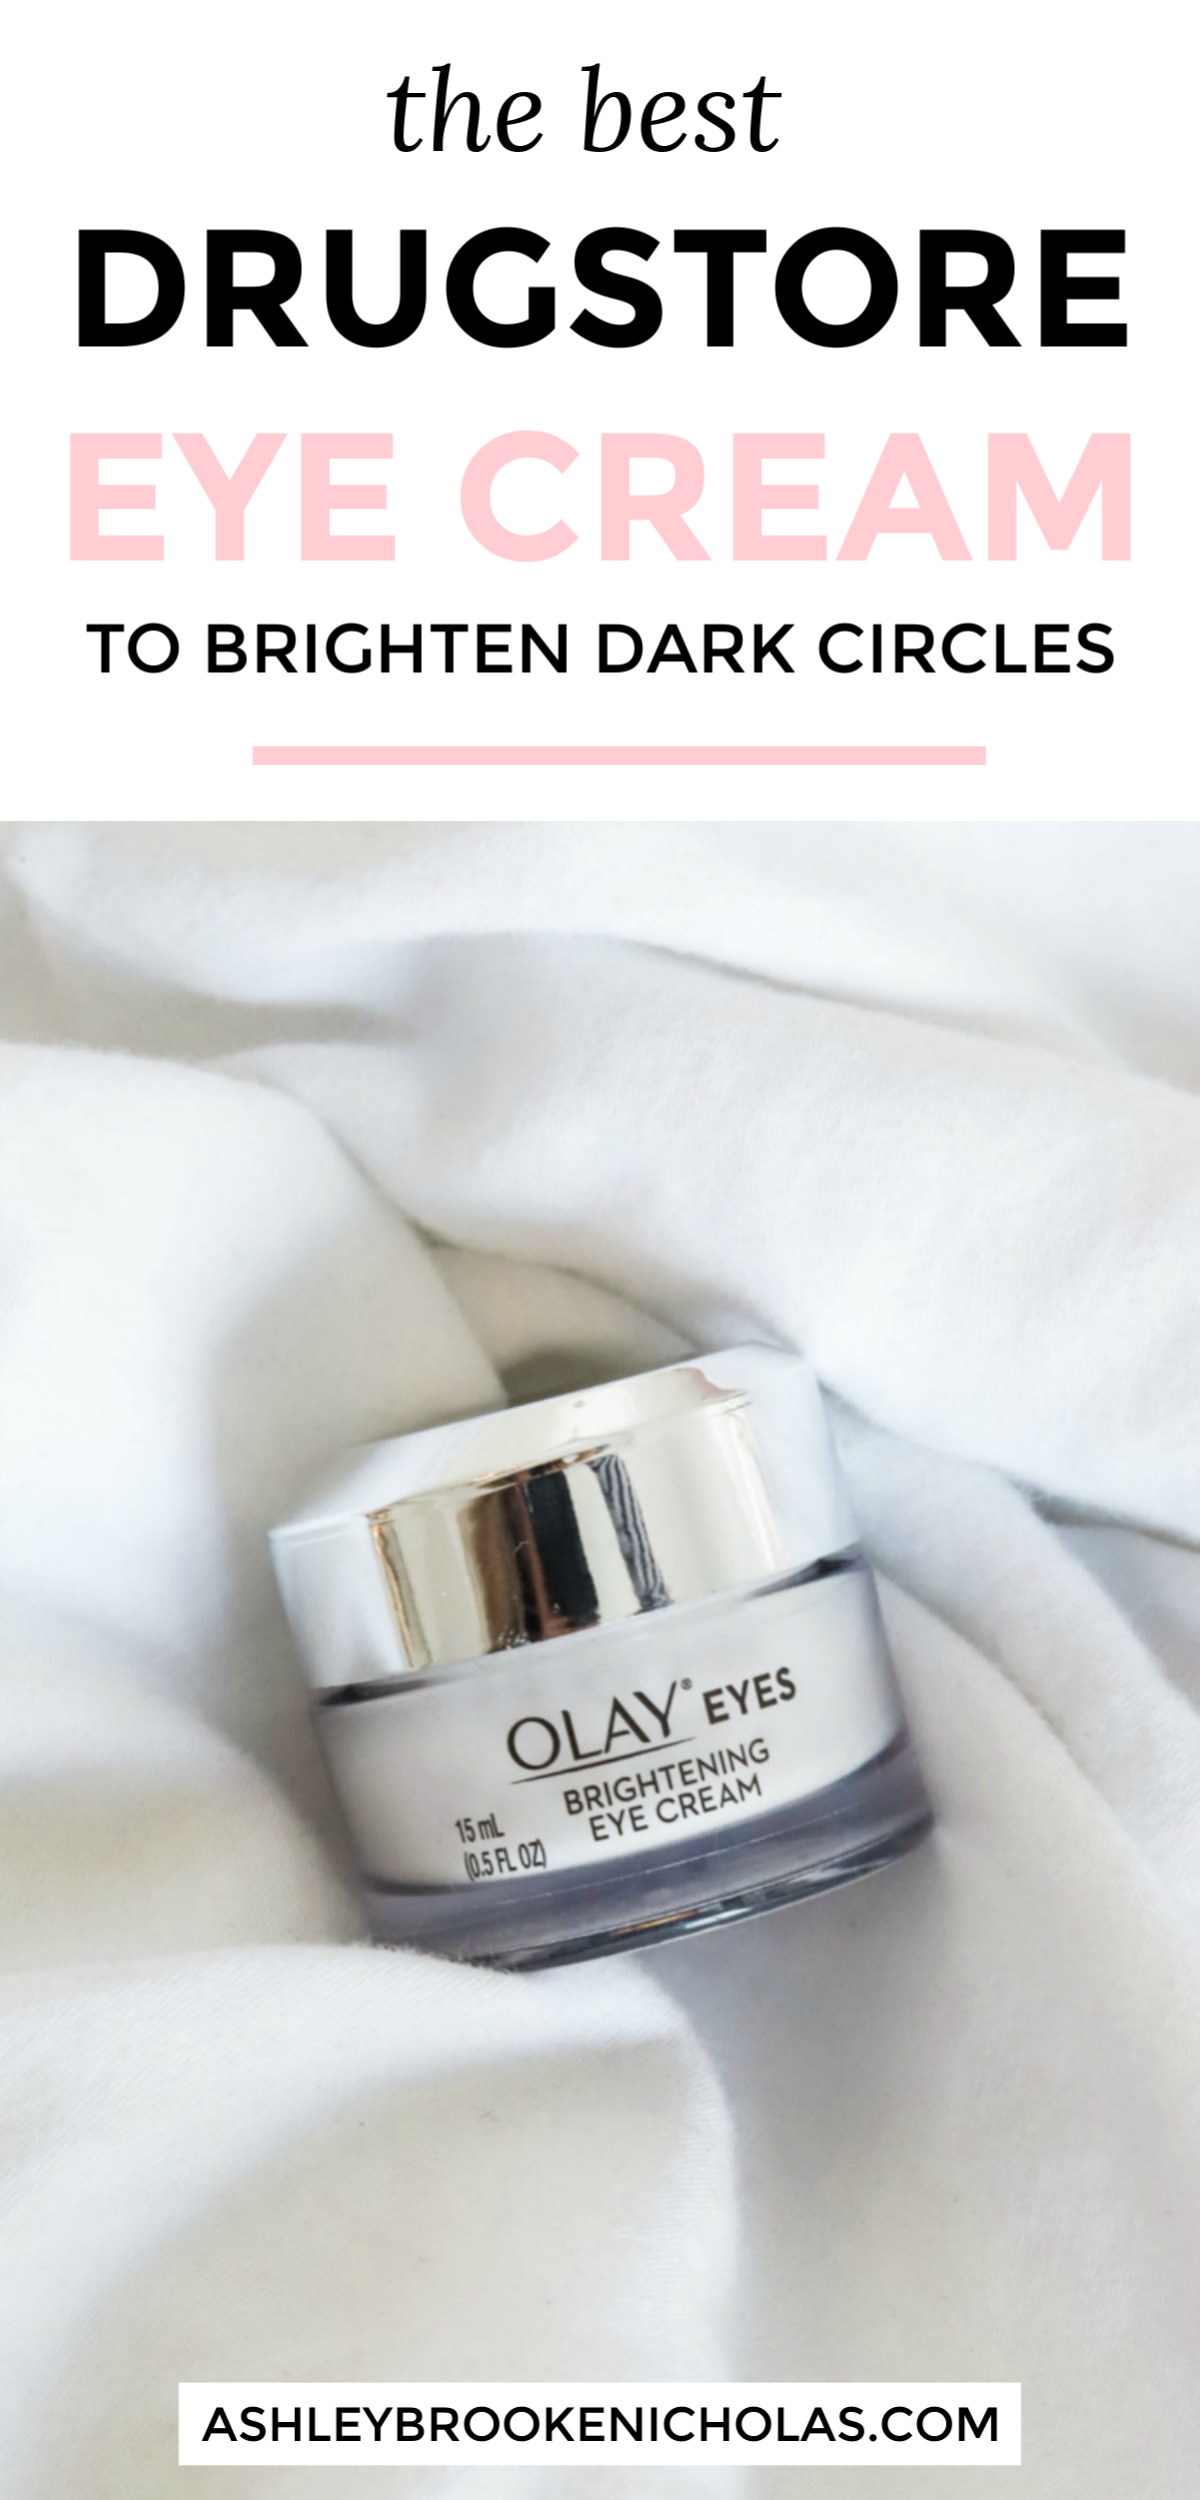 How To Get Rid Of Dark Circles The Best Drugstore Eye Cream From